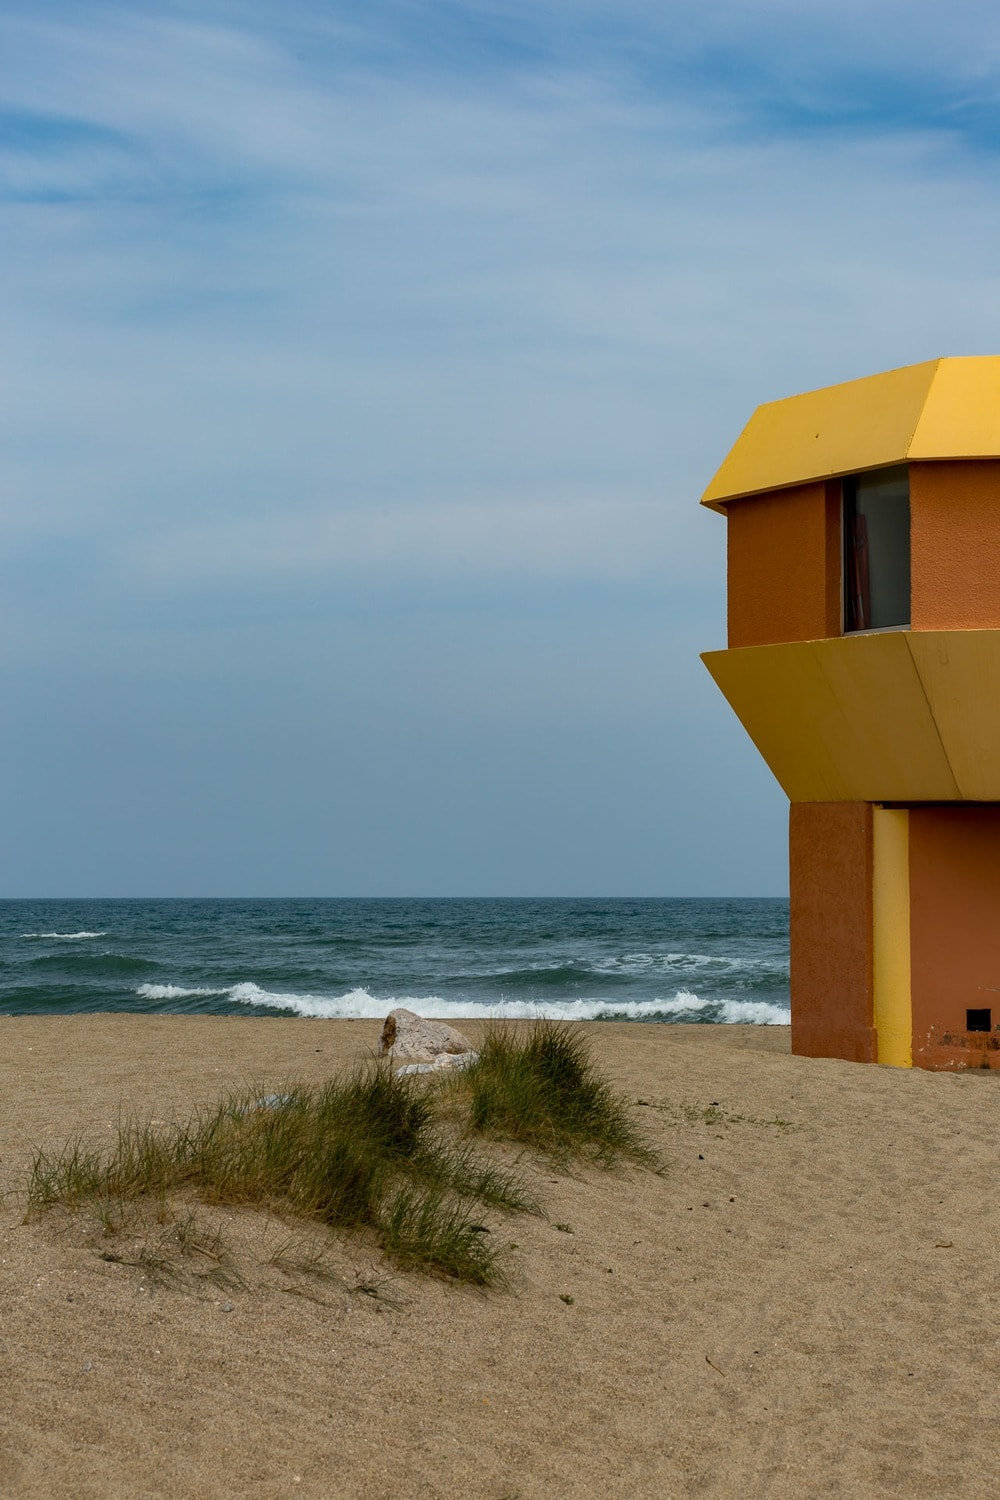 french lifeguard tower mediterranian